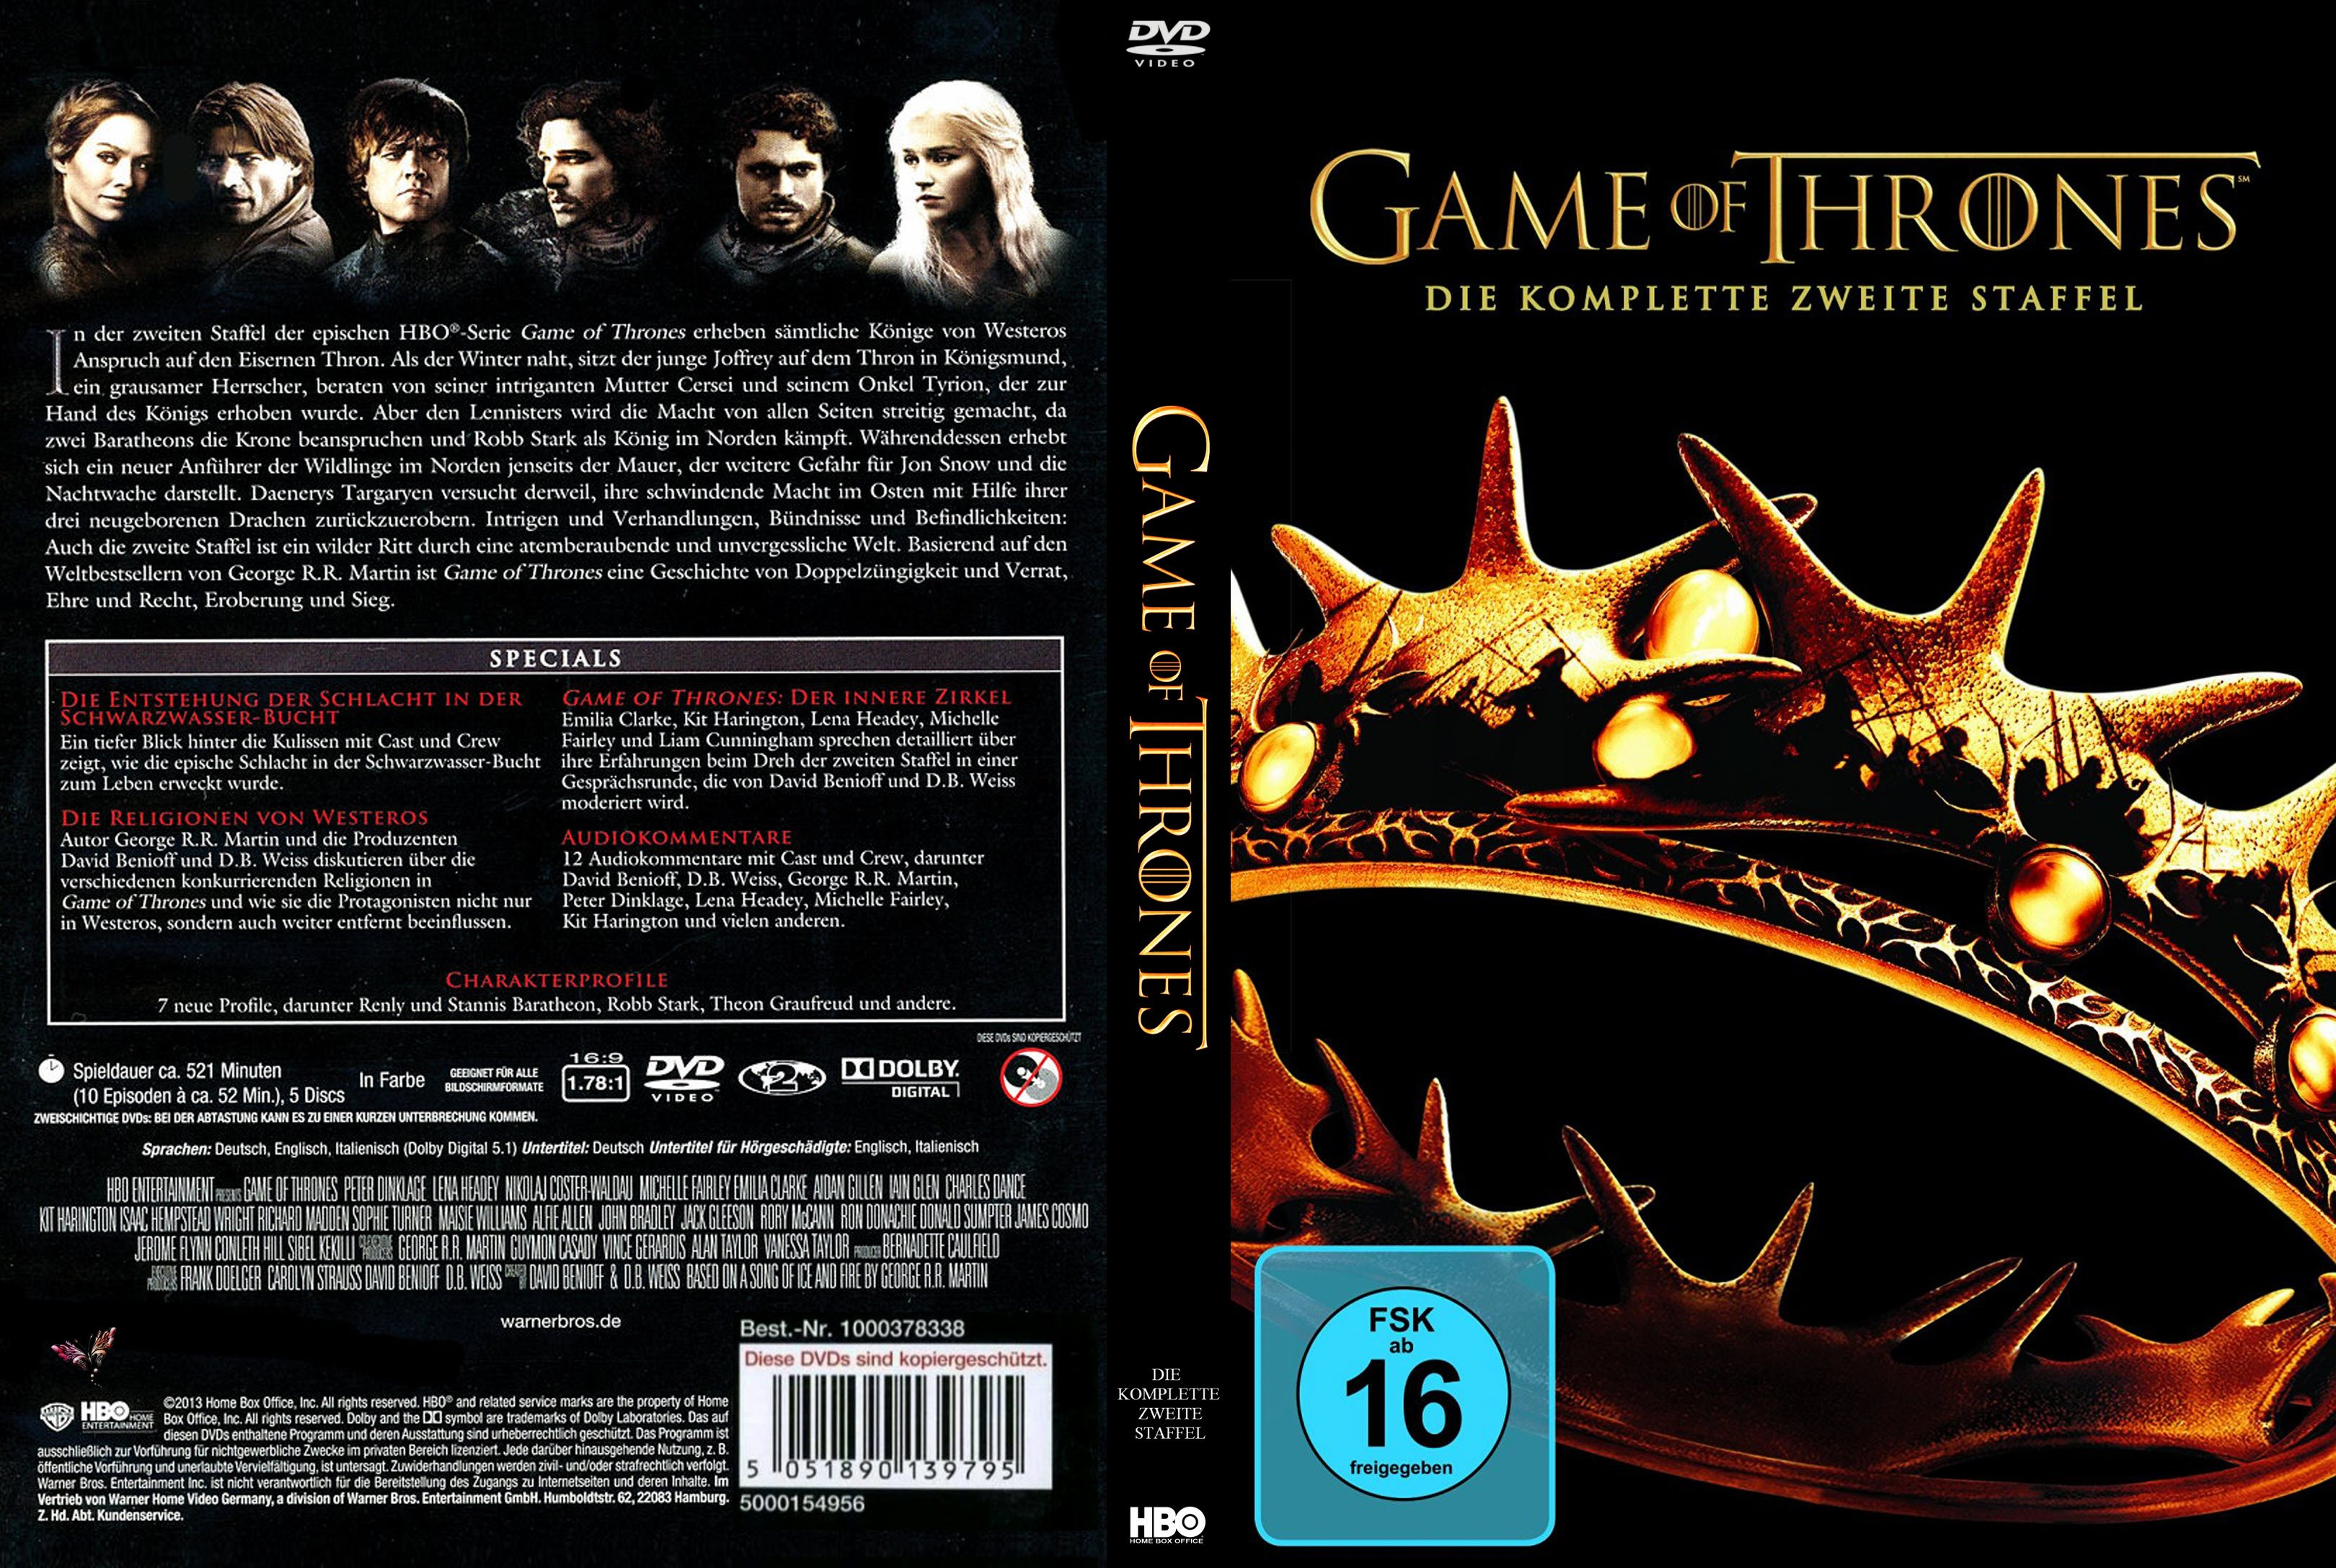 Game of Thrones Staffel 2 | German DVD Covers